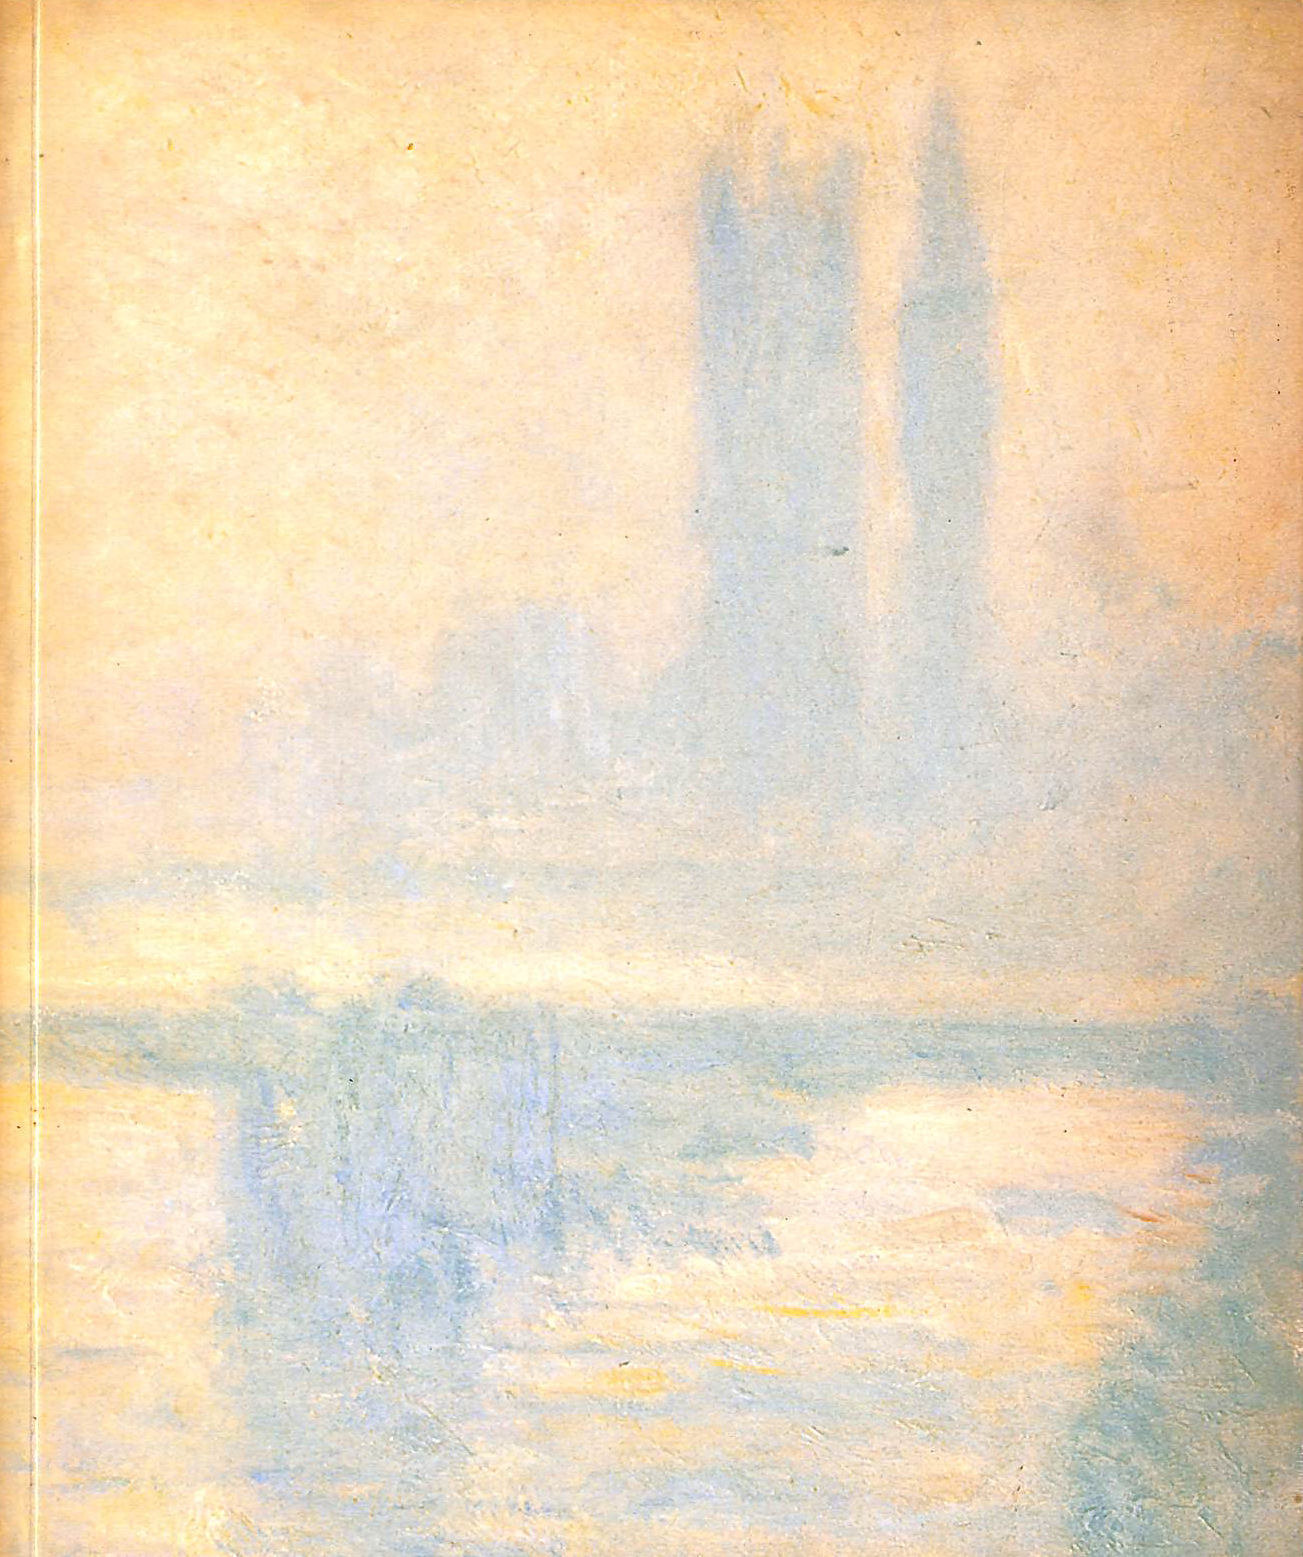 Image for The Impressionists in London: [catalogue of an exhibition at the] Hayward Gallery, 3 January to 11 March 1973